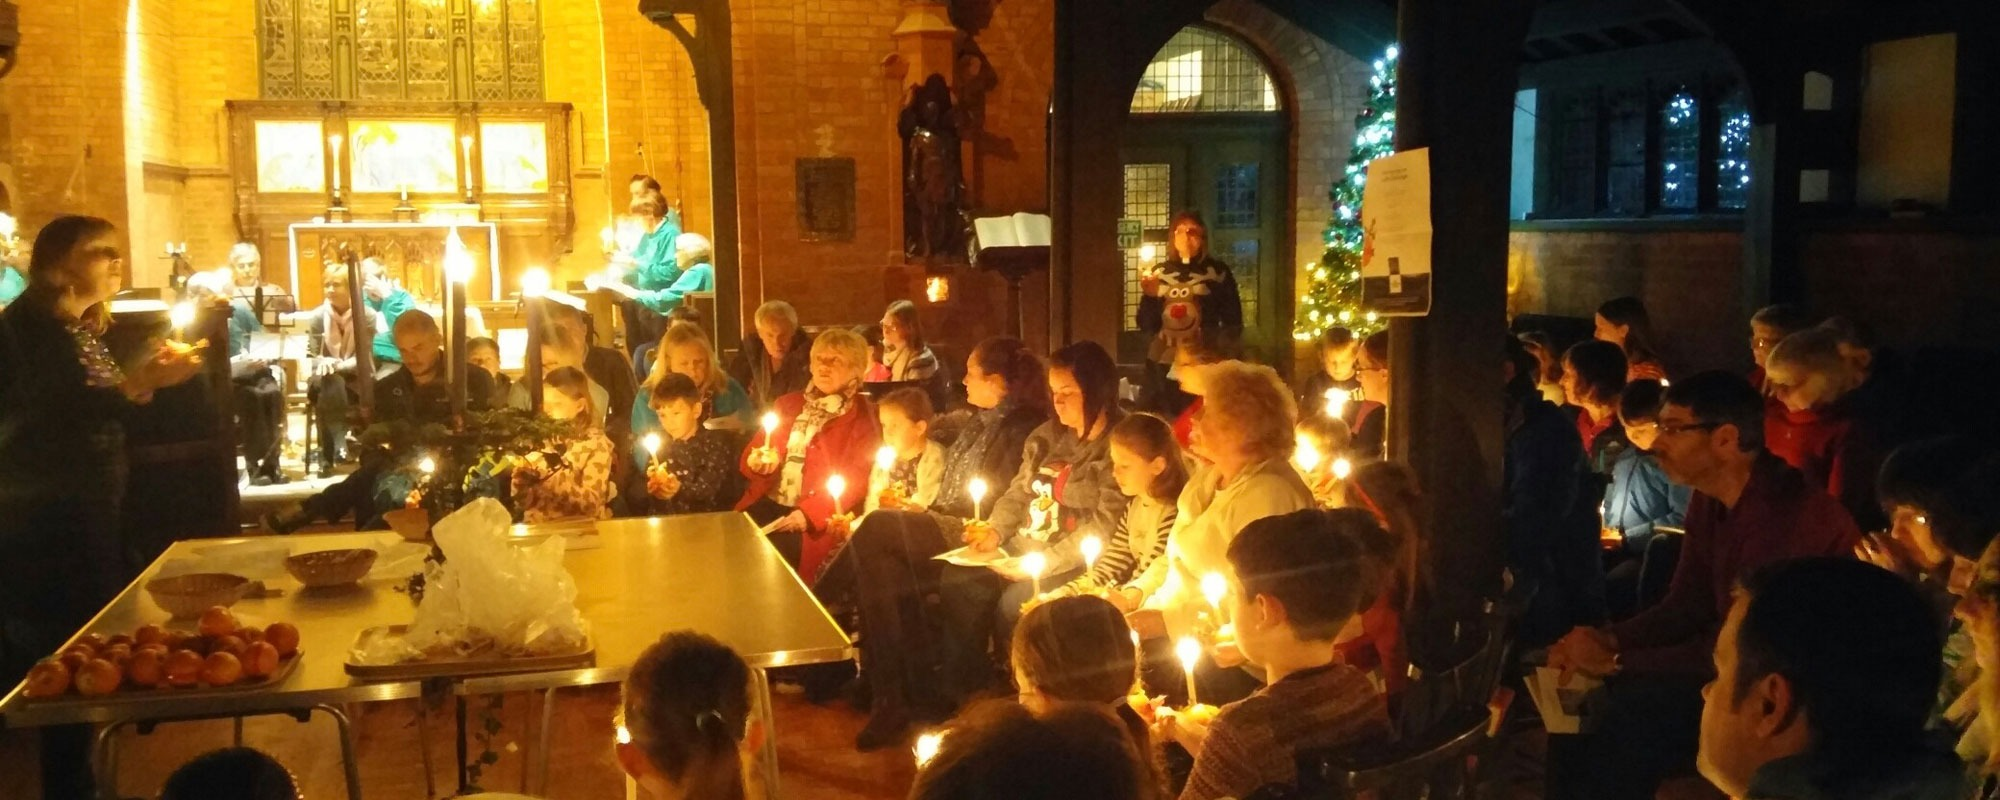 Christingle Service*Supporting the work of The Children's Society*Find out more about our Christingle and Crib Service This Christmas